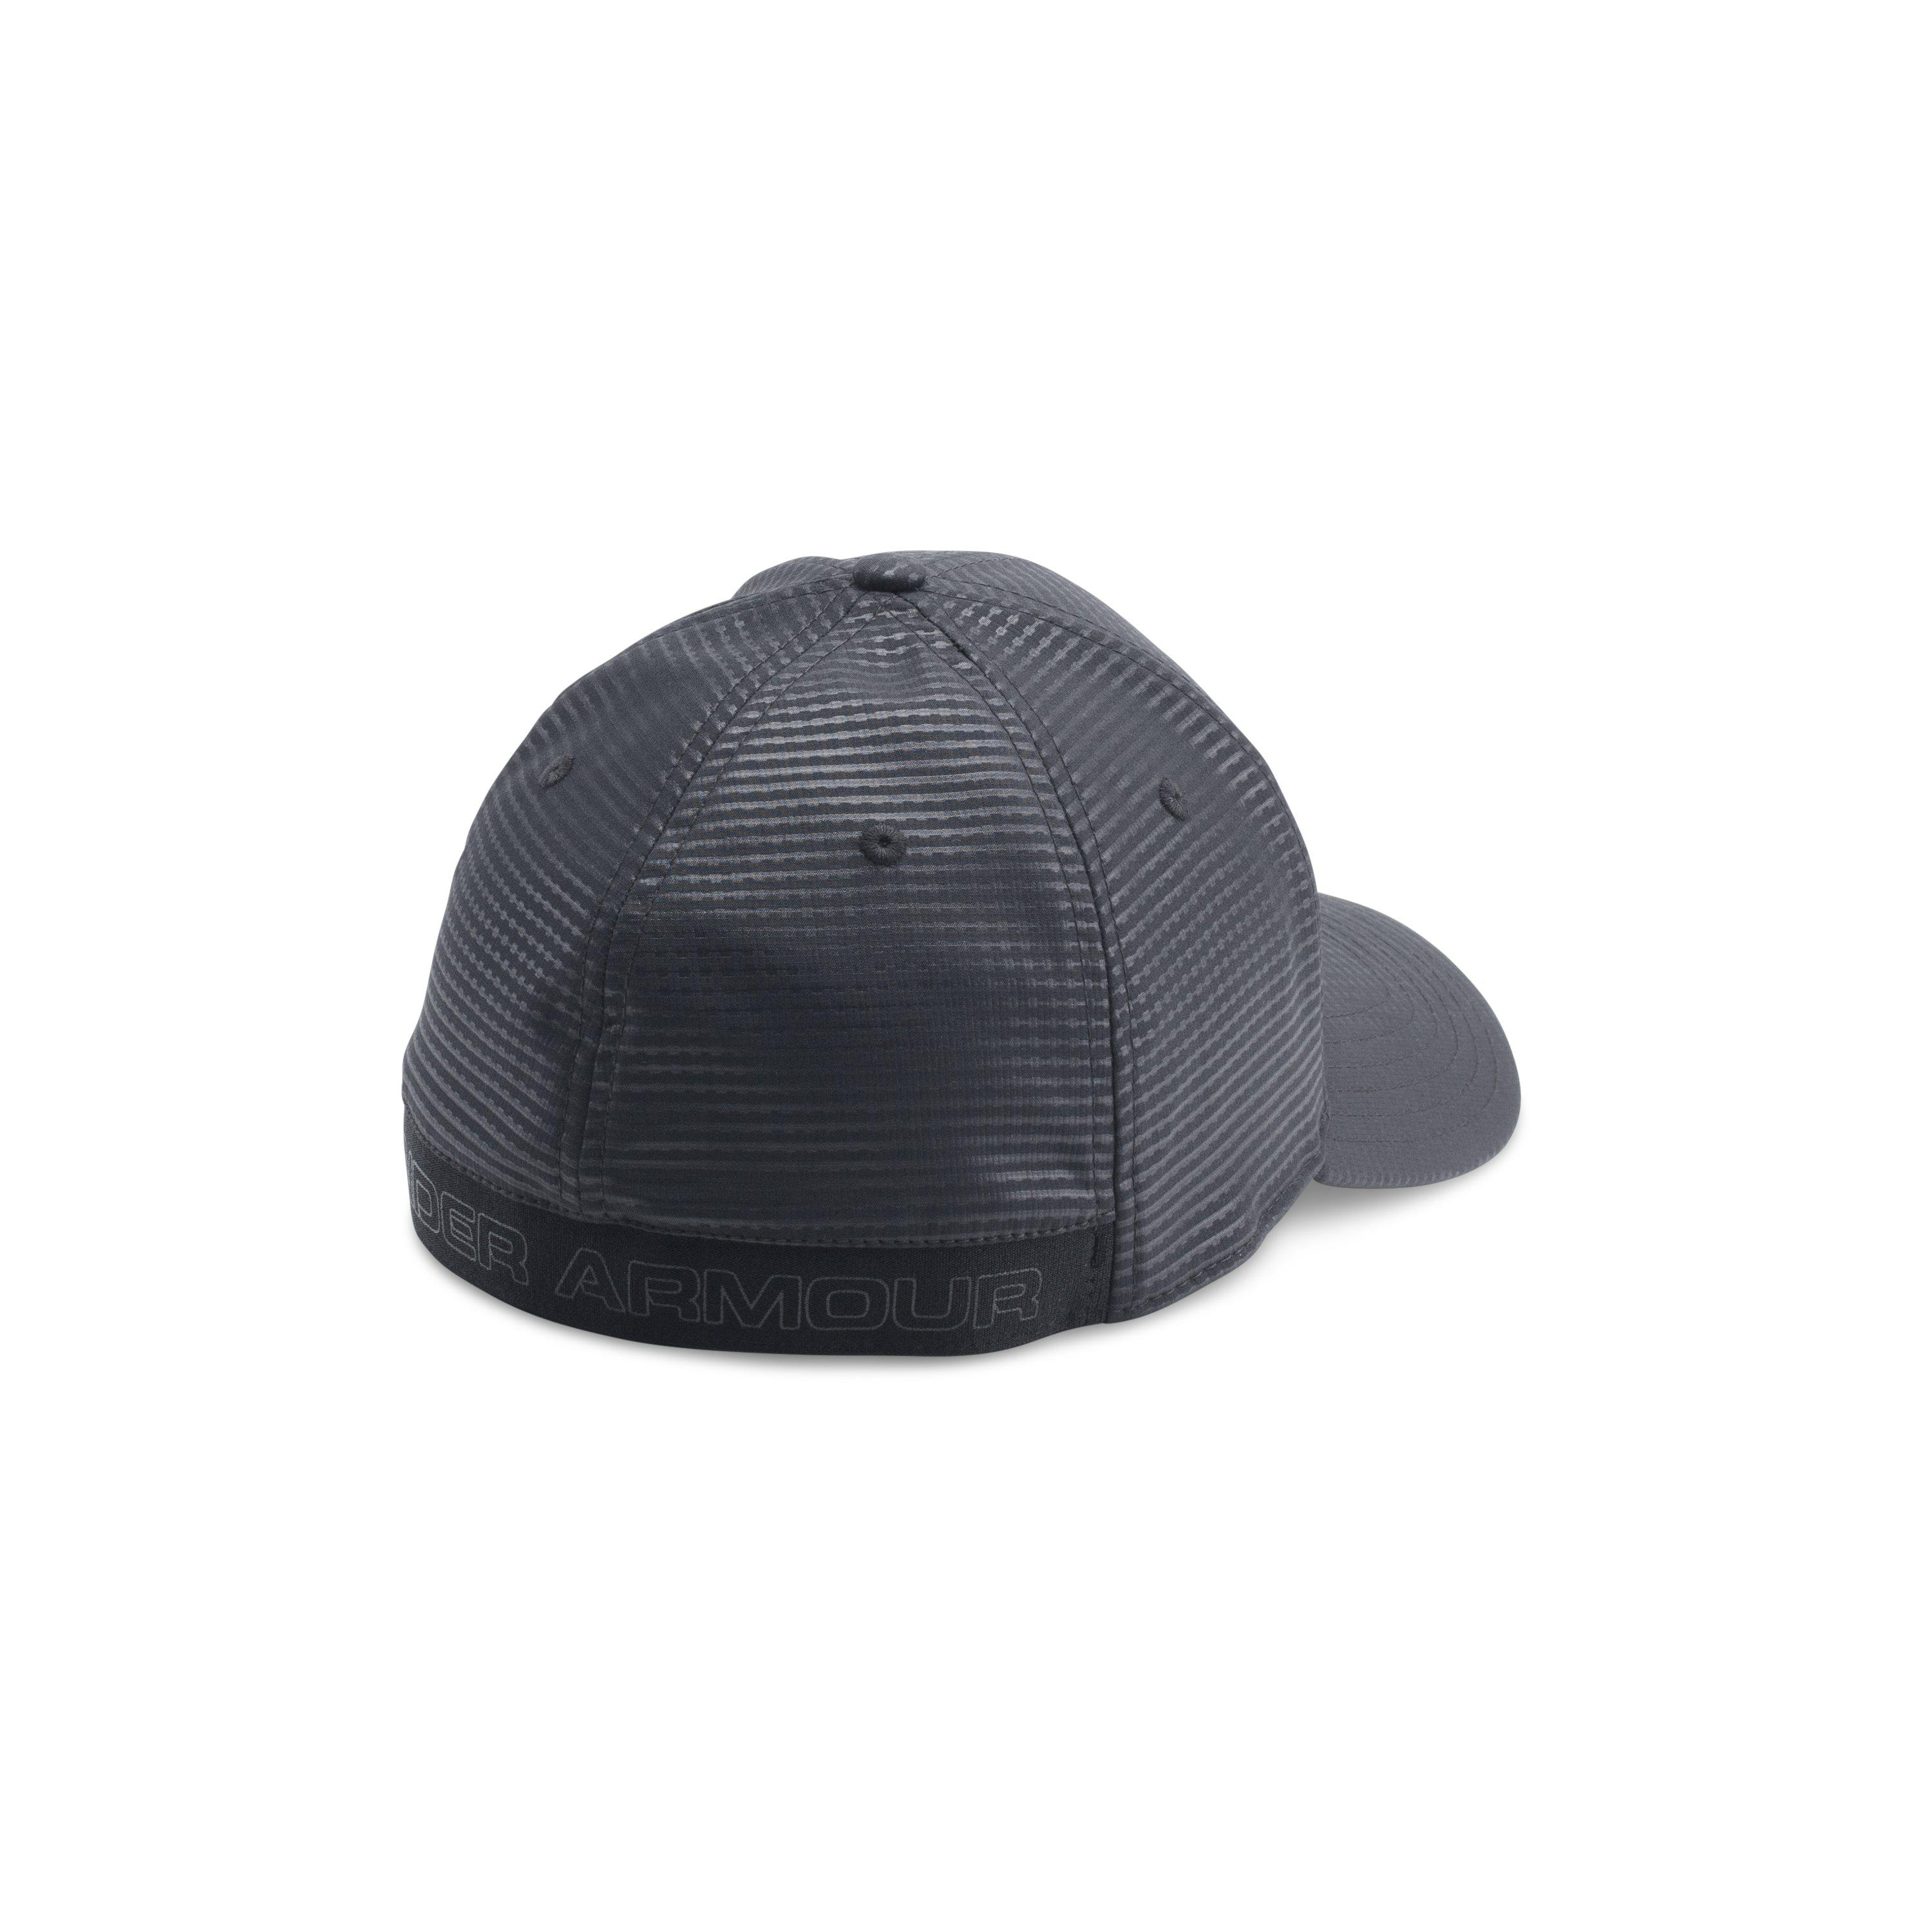 a7996acb320 Lyst - Under Armour Men s Ua Storm Printed Headline Cap in Black for Men